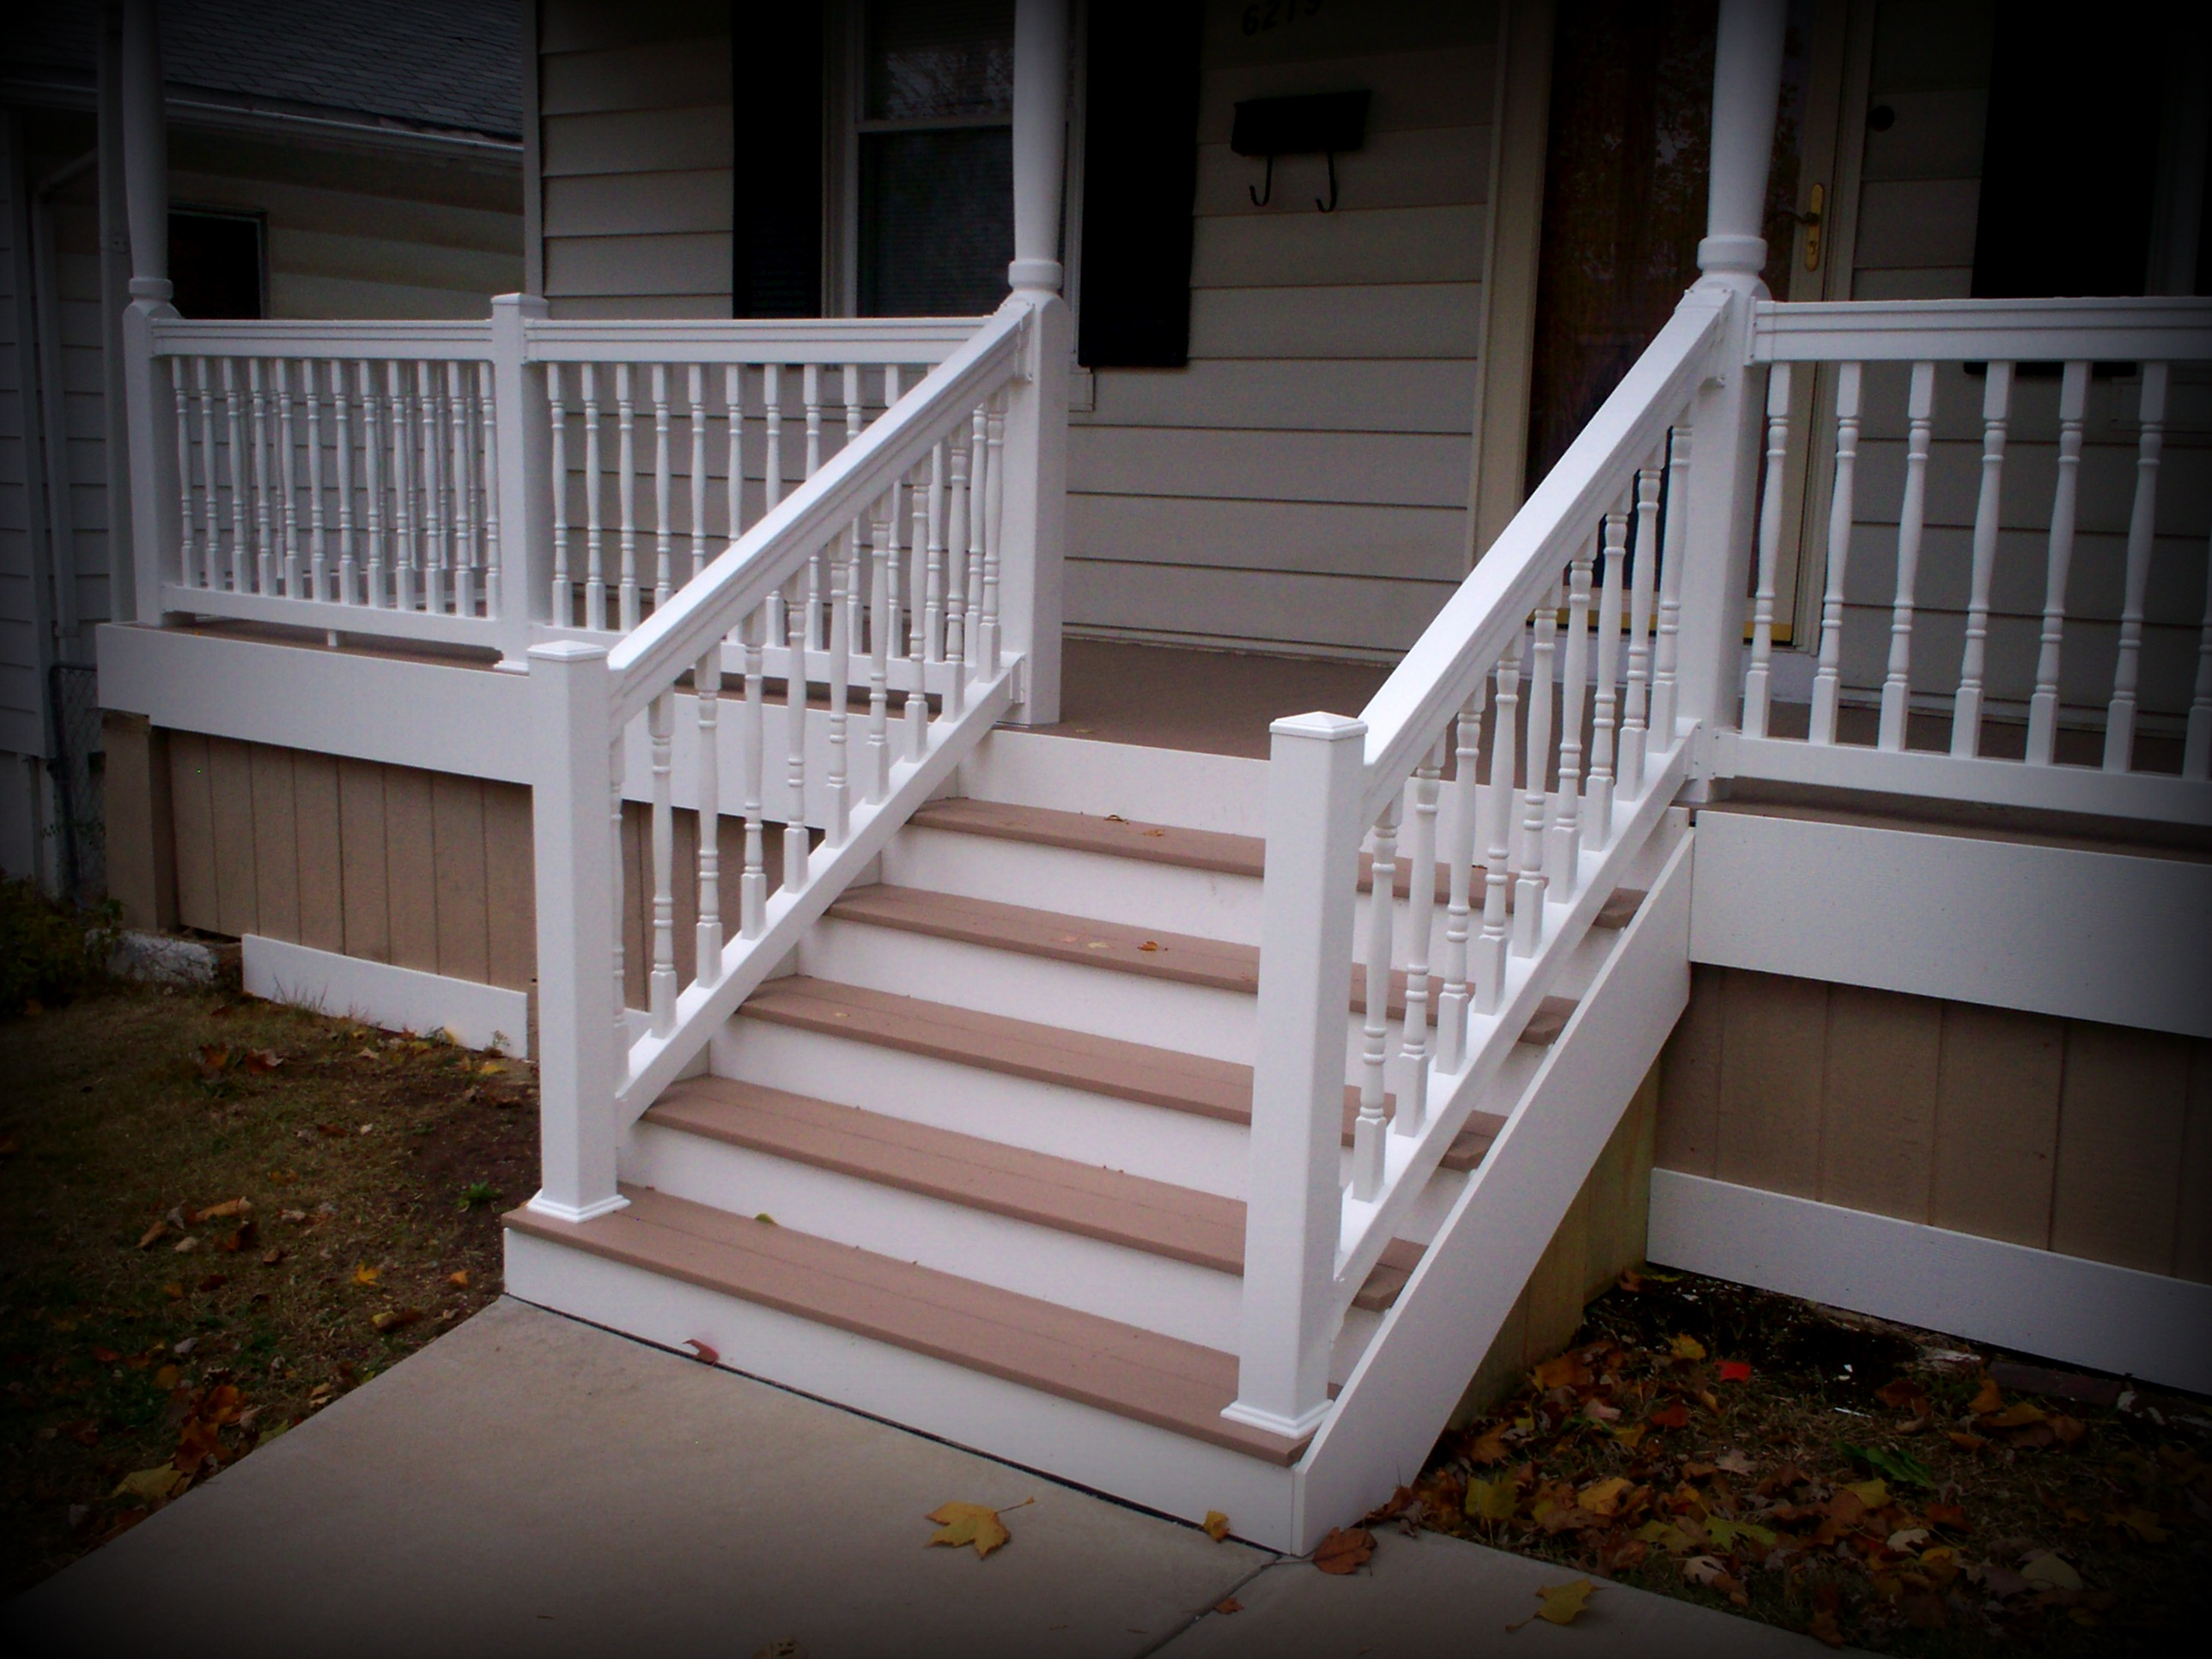 Porch Design Ideas Material Color Shape Size St Louis Decks Screened Porches Pergolas